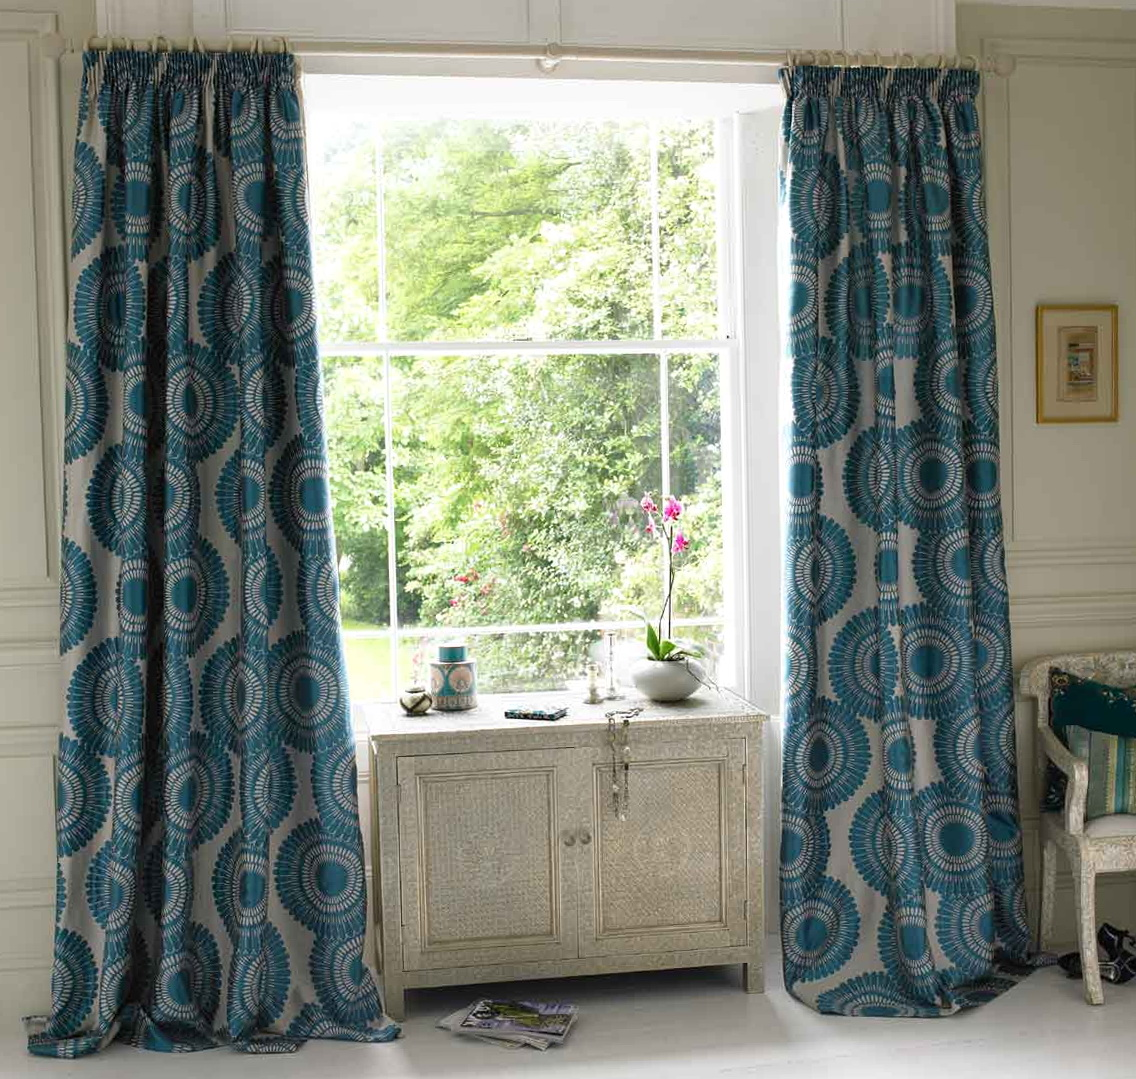 Teal Patterned Curtains Uk Home Design Ideas